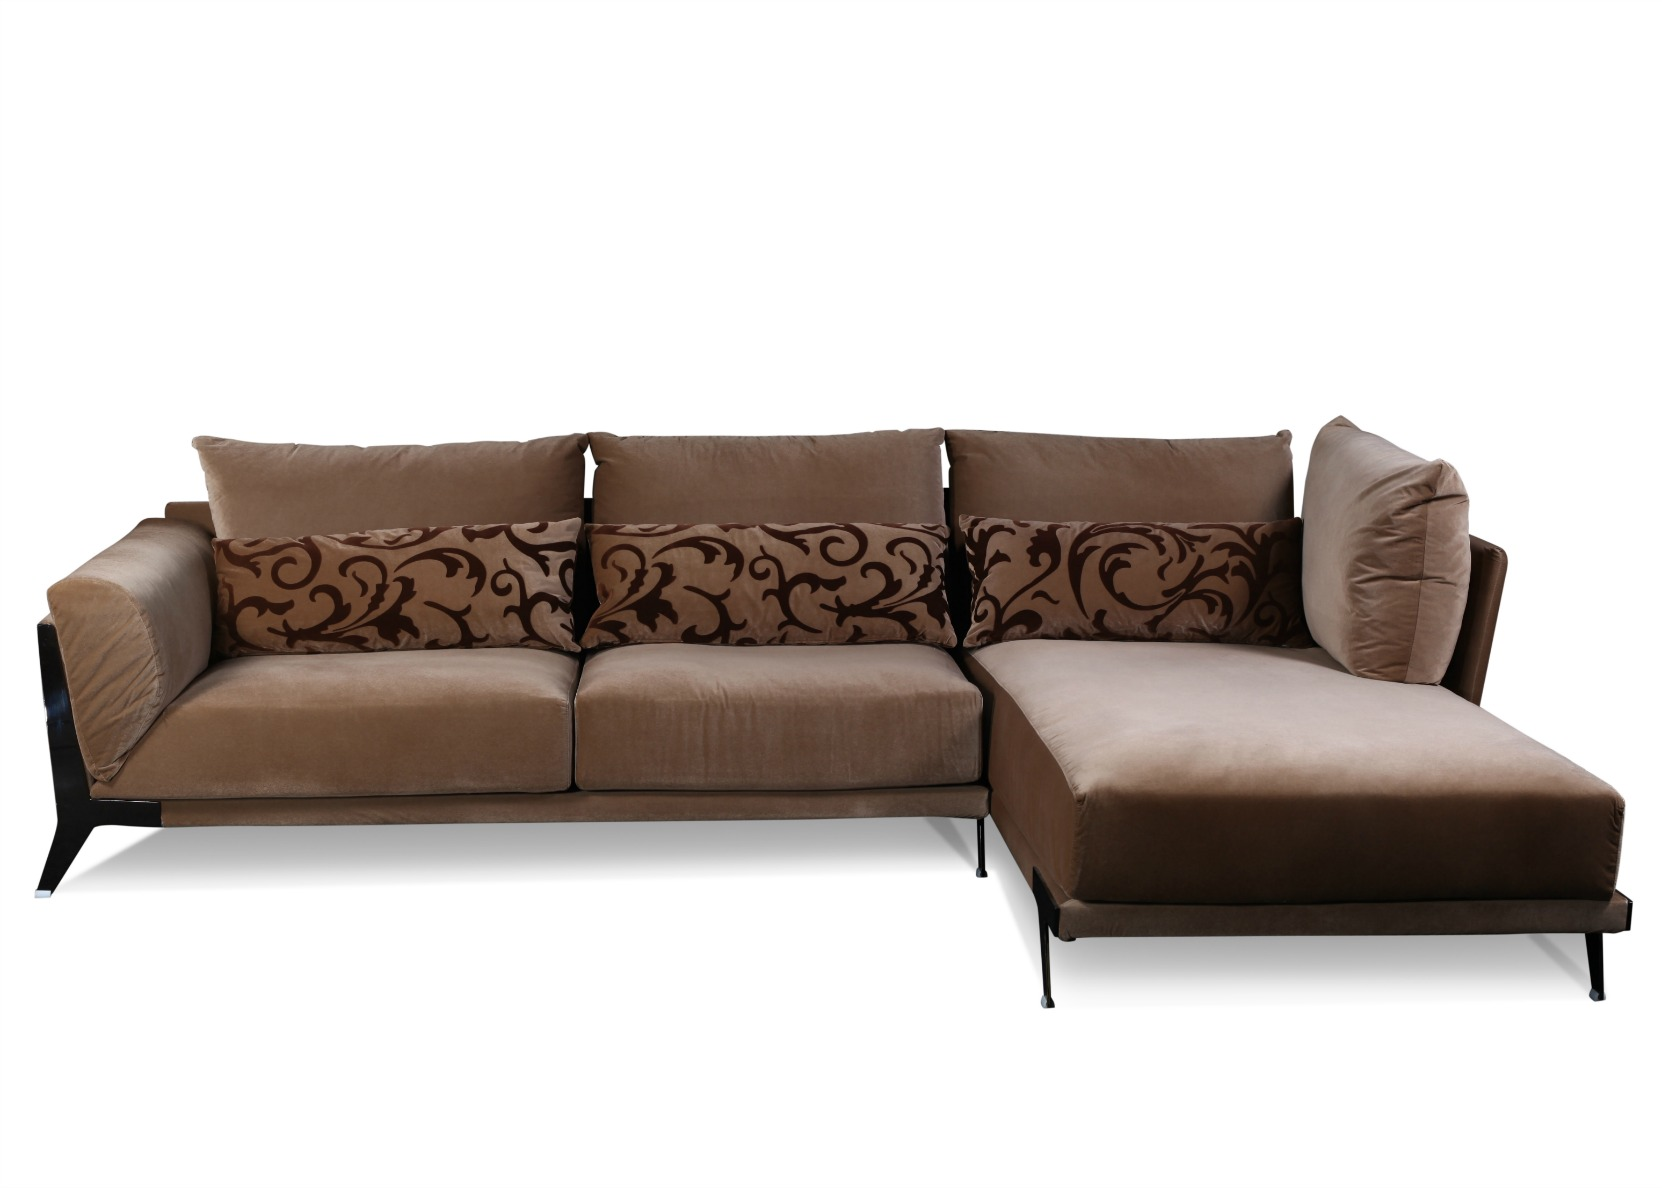 Modern Sectional Sofa In Rich Brown Fabric Not Just Brown